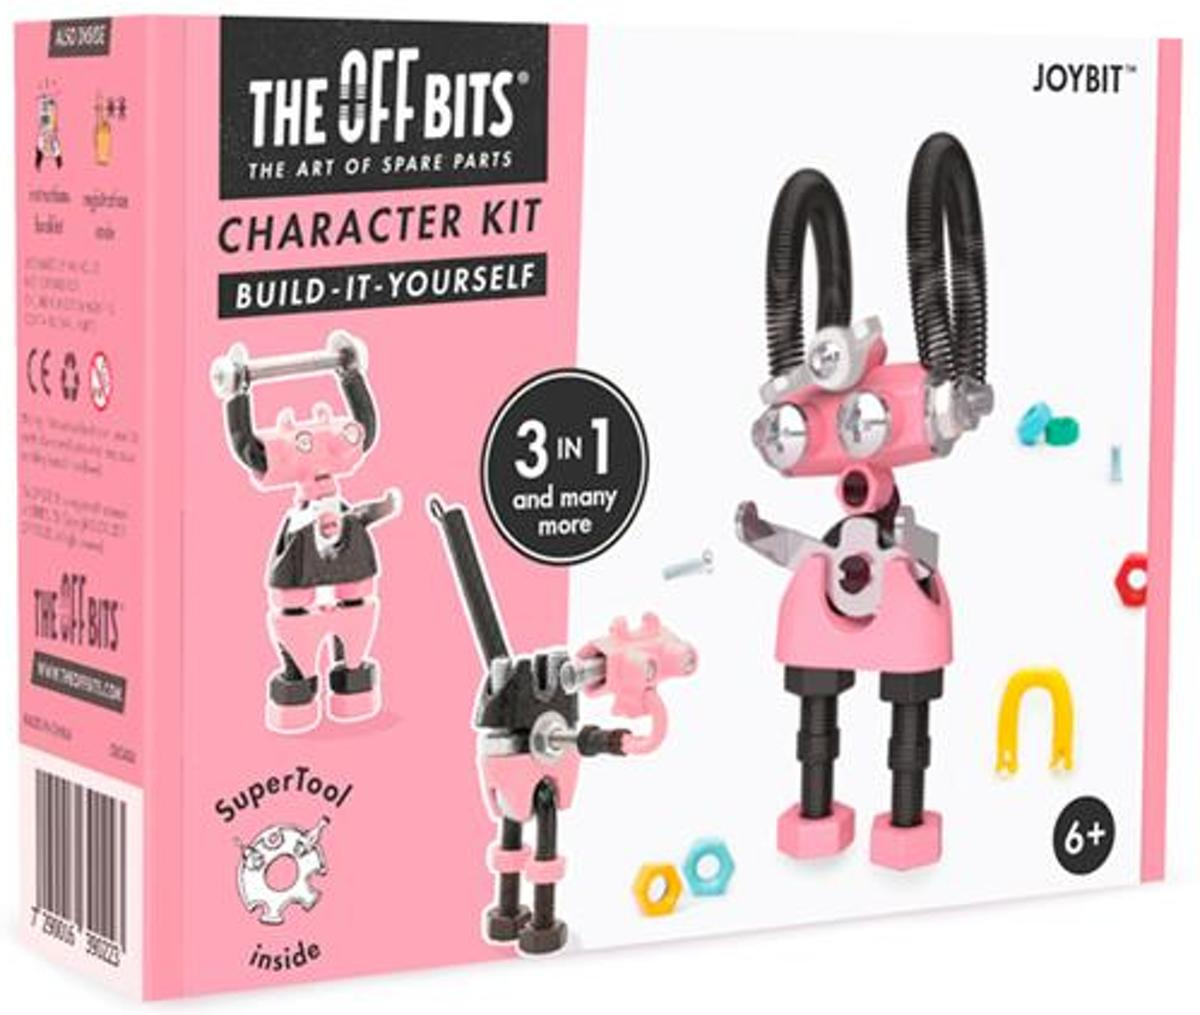 The OFFbits Joybit M